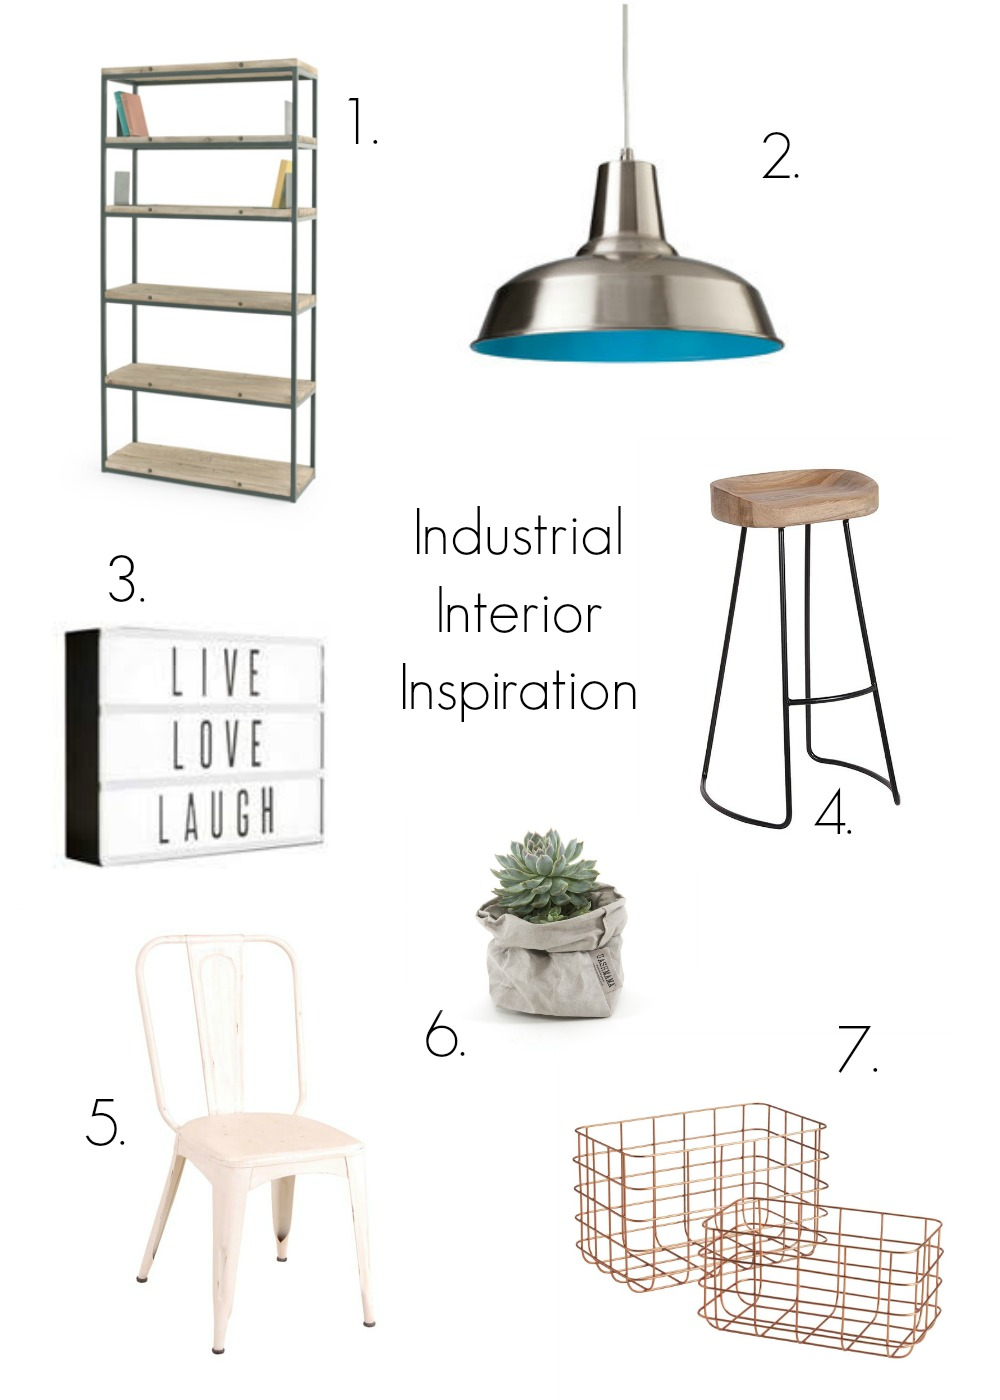 Industrial interior design inspiration